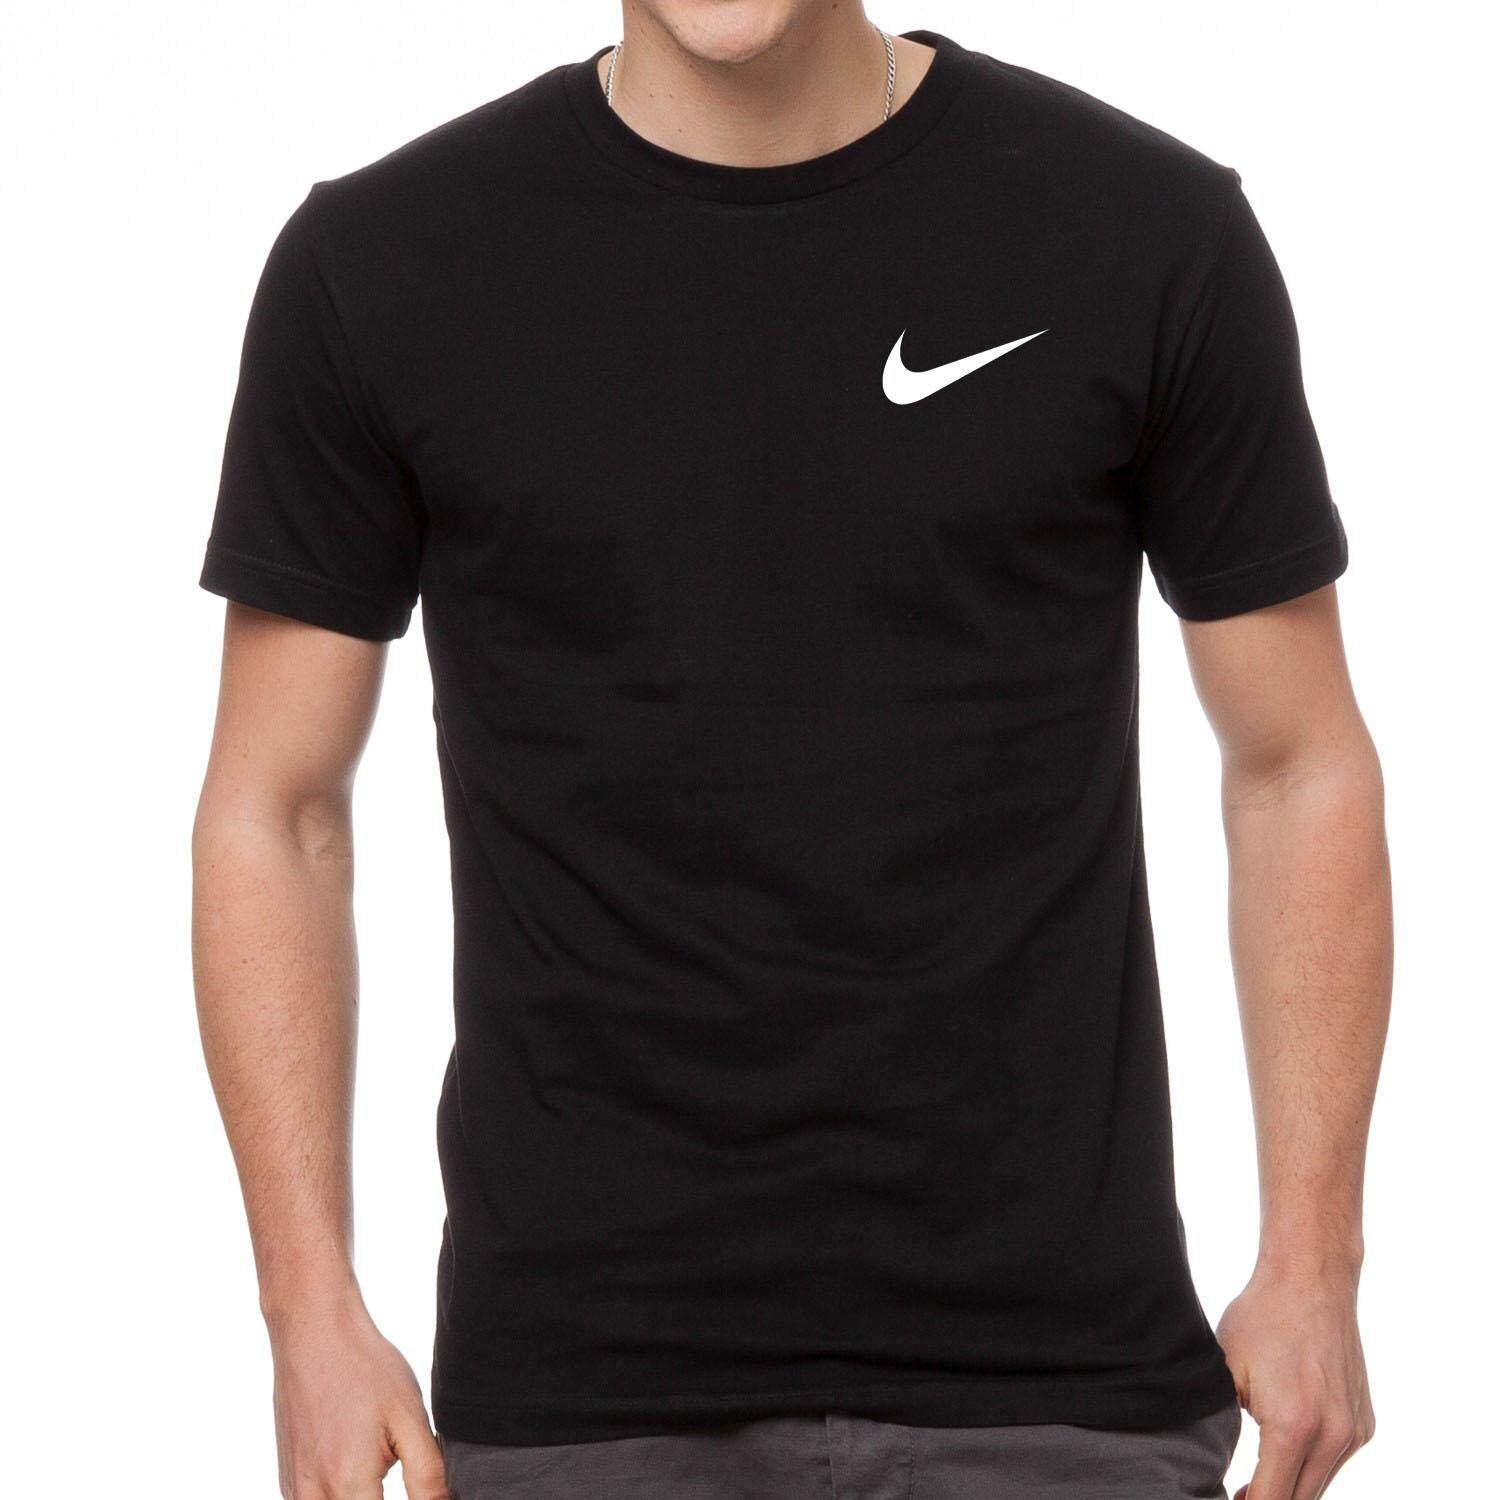 Popular T Shirts For Men The Best Prices In Malaysia Tendencies Tshirt Future Punk Hitam L Nikee Low Cost Cotton